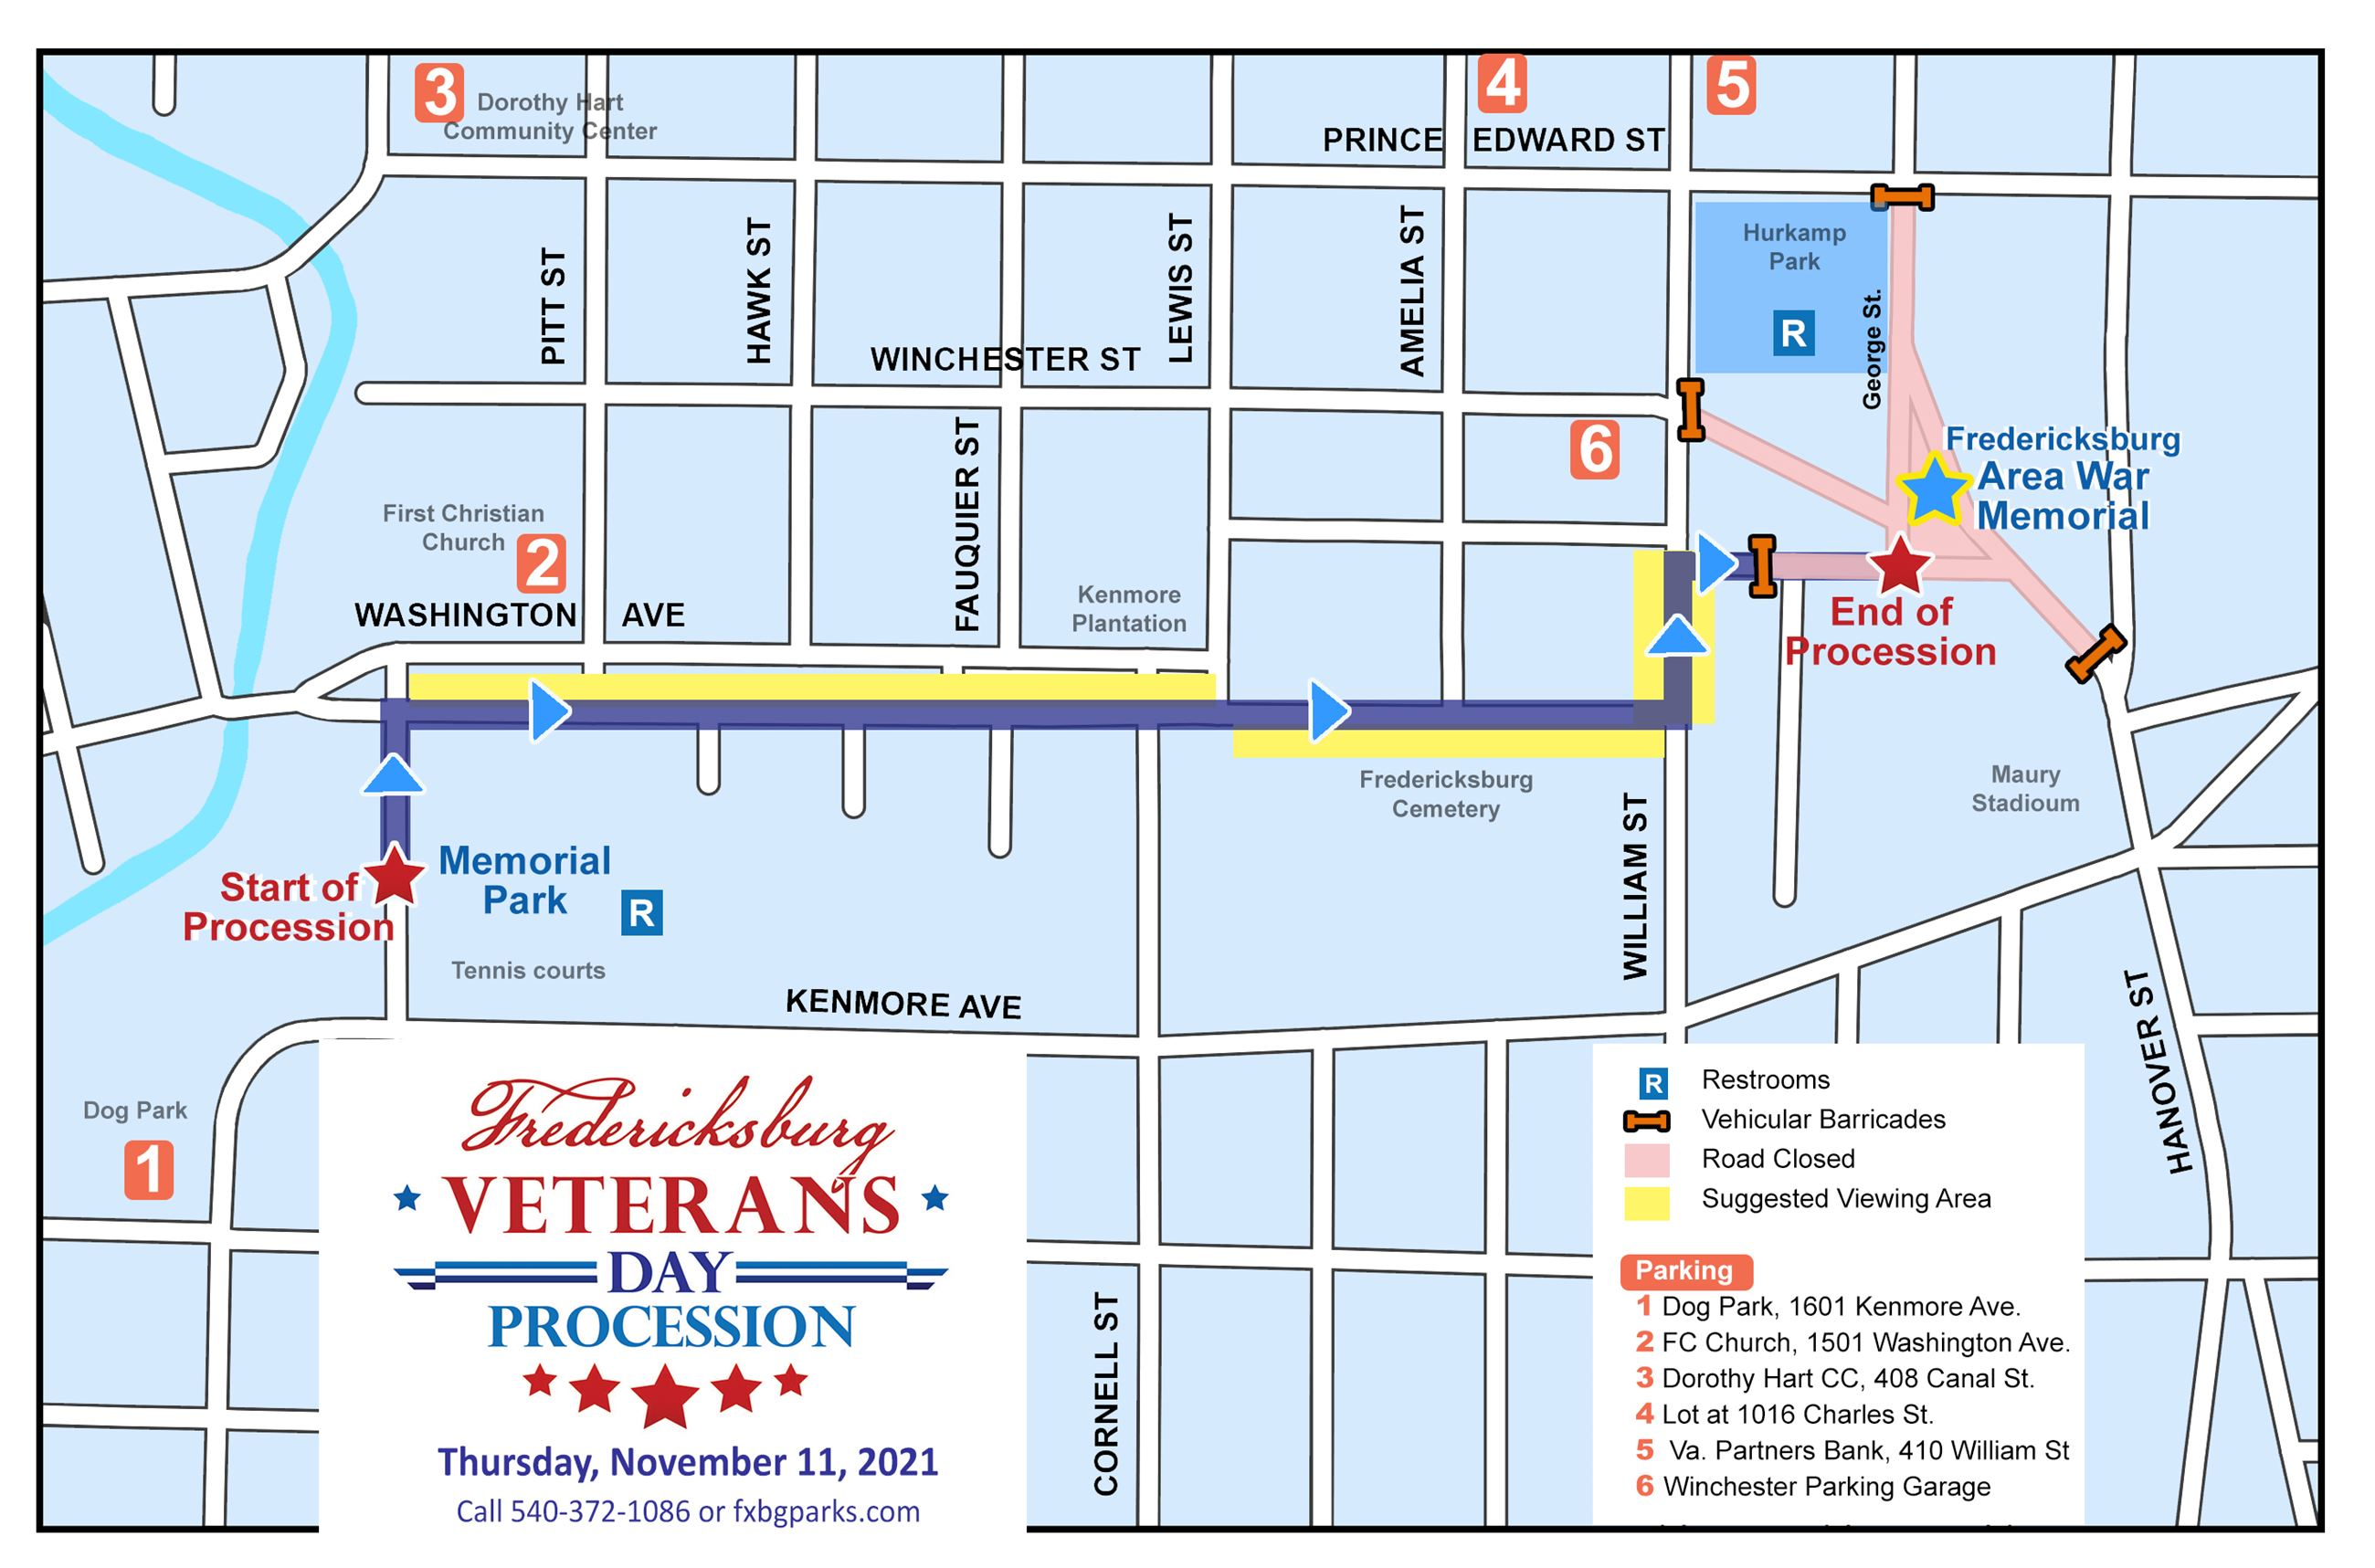 Fred Veterans Day Procession Map 2019